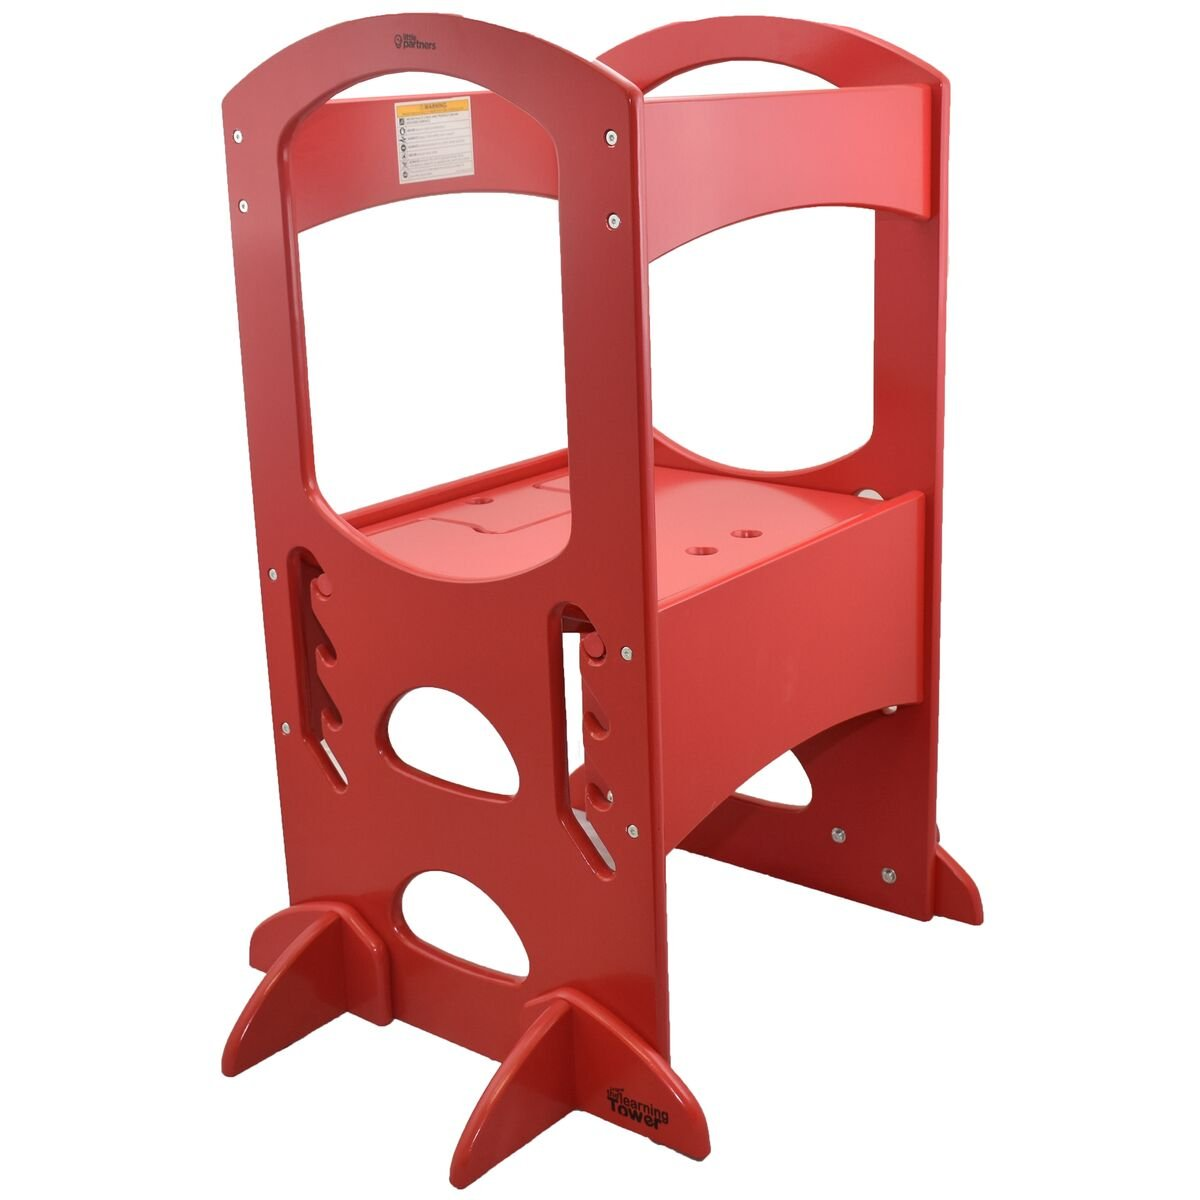 Learning Tower Kids Adjustable Height Kitchen Step Stool with Safety Rail – Wood Construction, Perfect for Toddlers or Any Little Helper – Quality Learning Furniture (Red) Little Partners